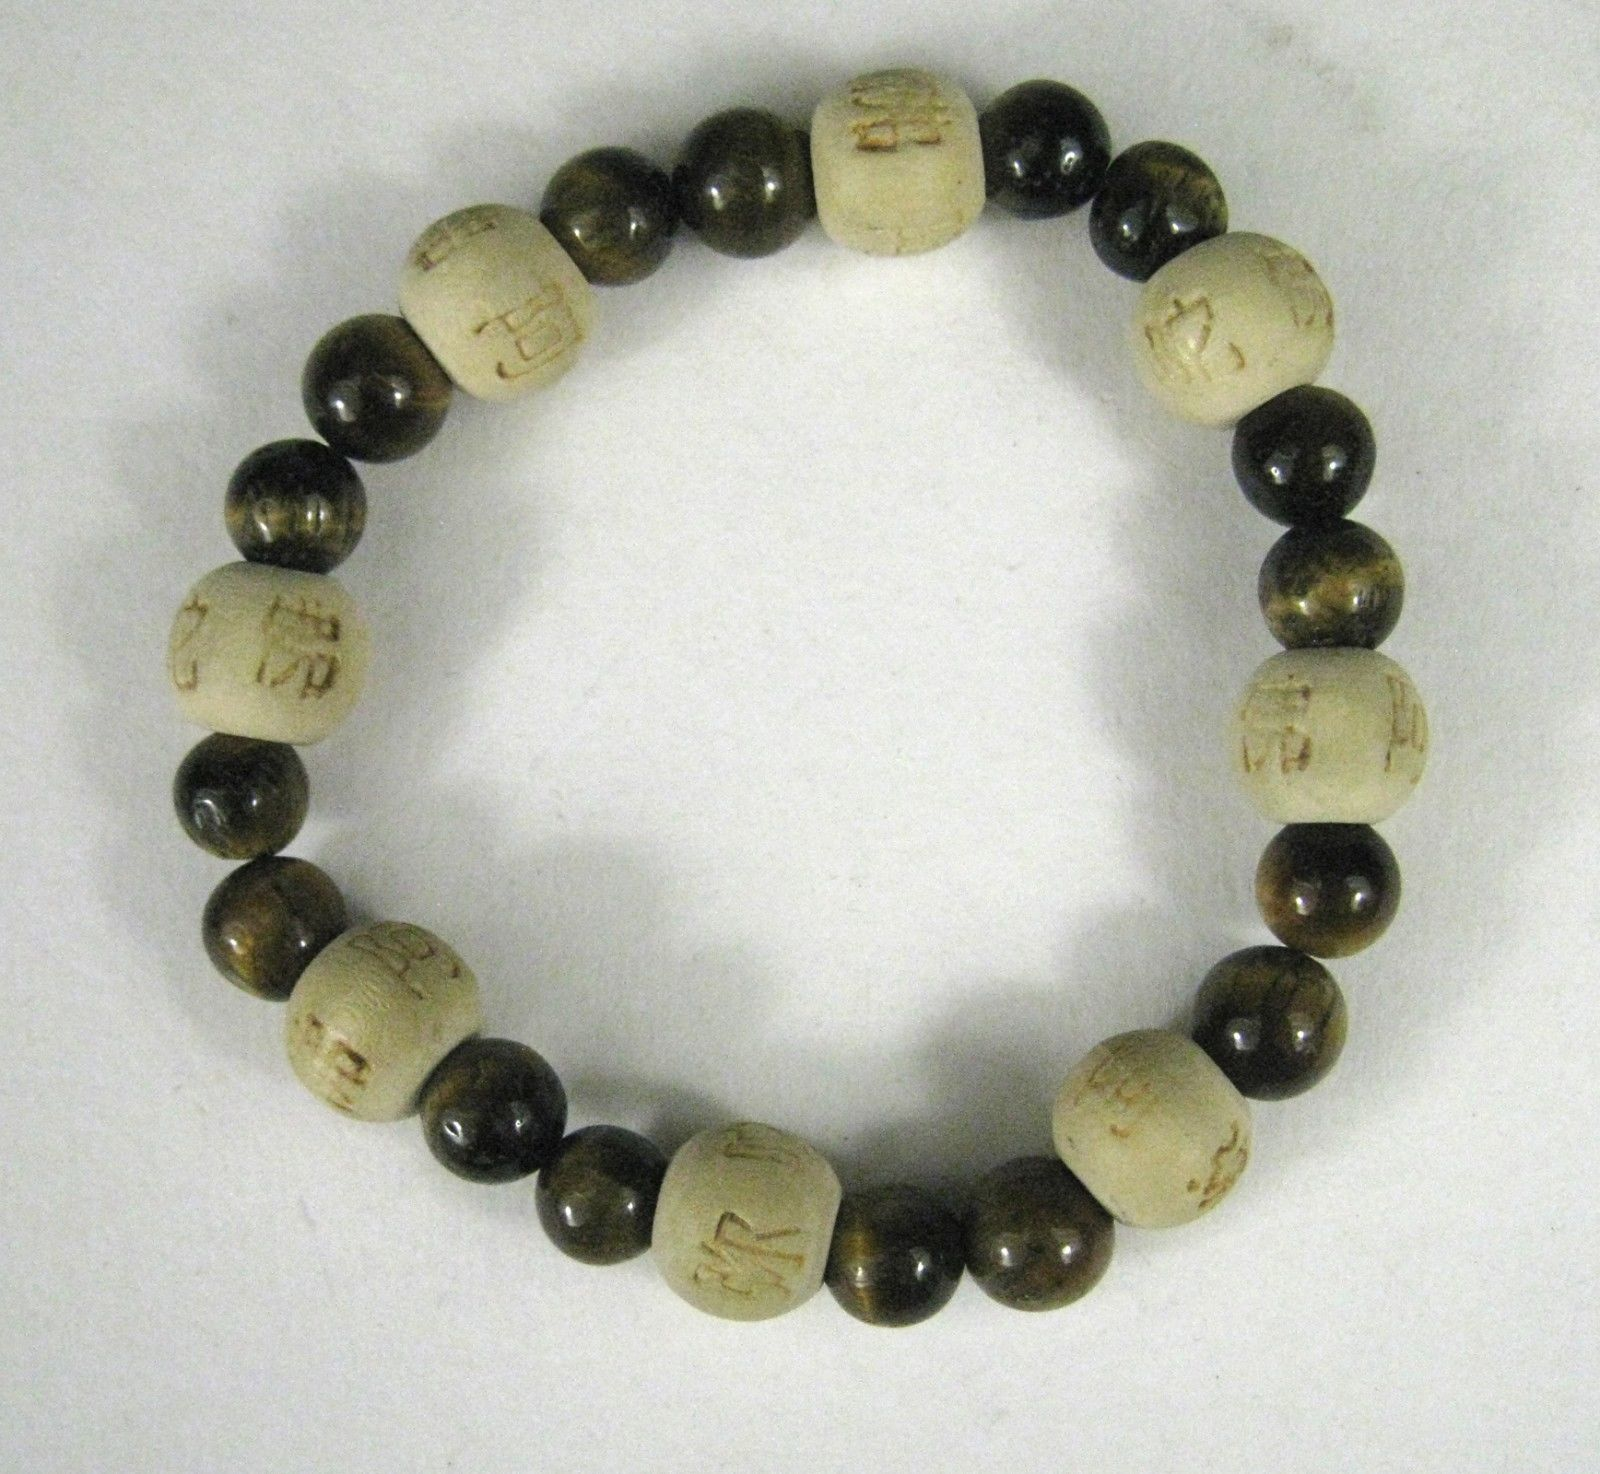 Bracelet Tiger Eye Stretchable 8.5 inches Wooden Beads Chinese Writing Character